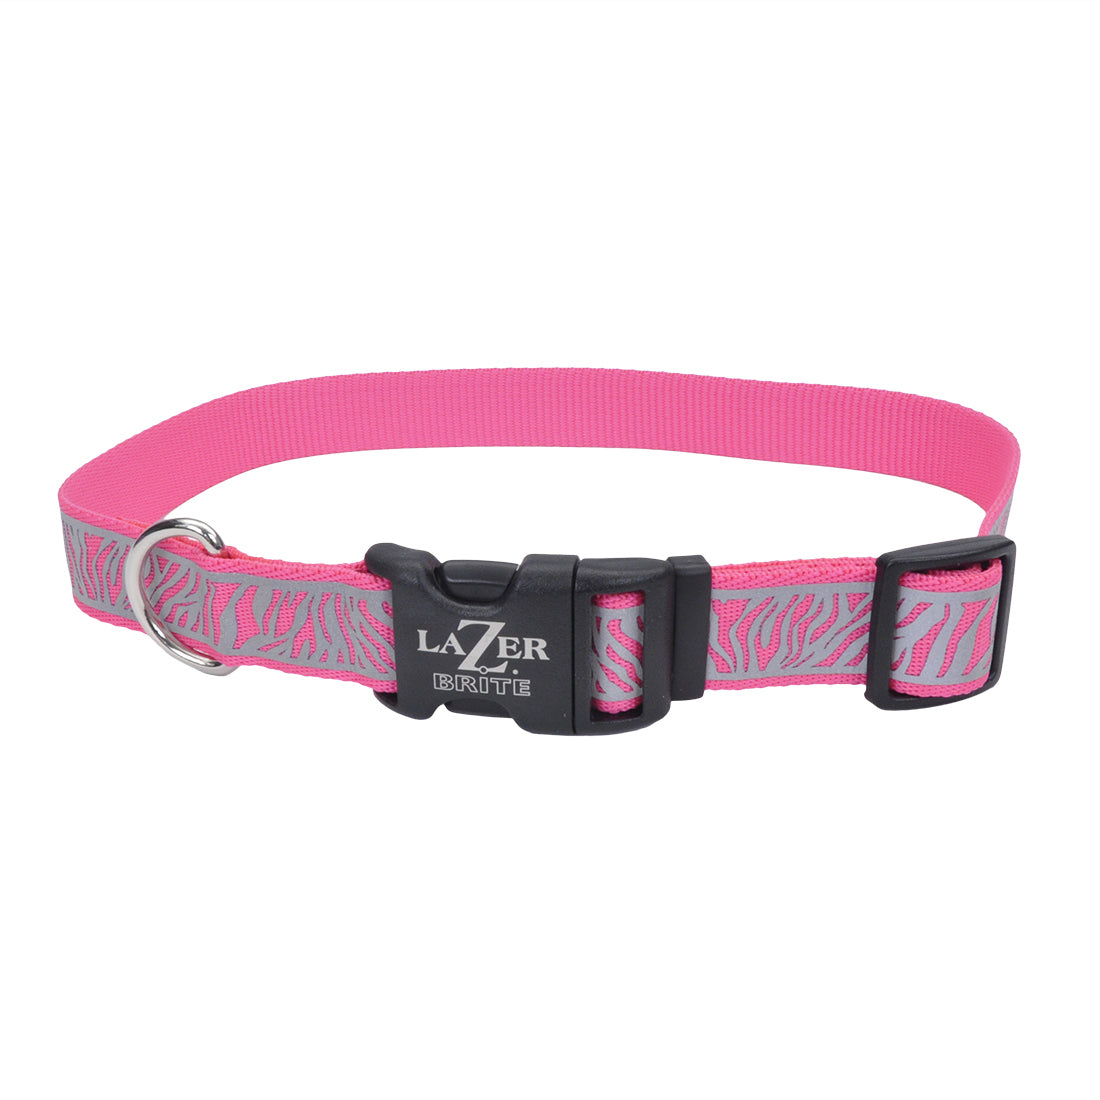 "Coastal Lazer Bright Reflective Adjustable Collar 12-18"" - 5/8"" Pink Zebra"